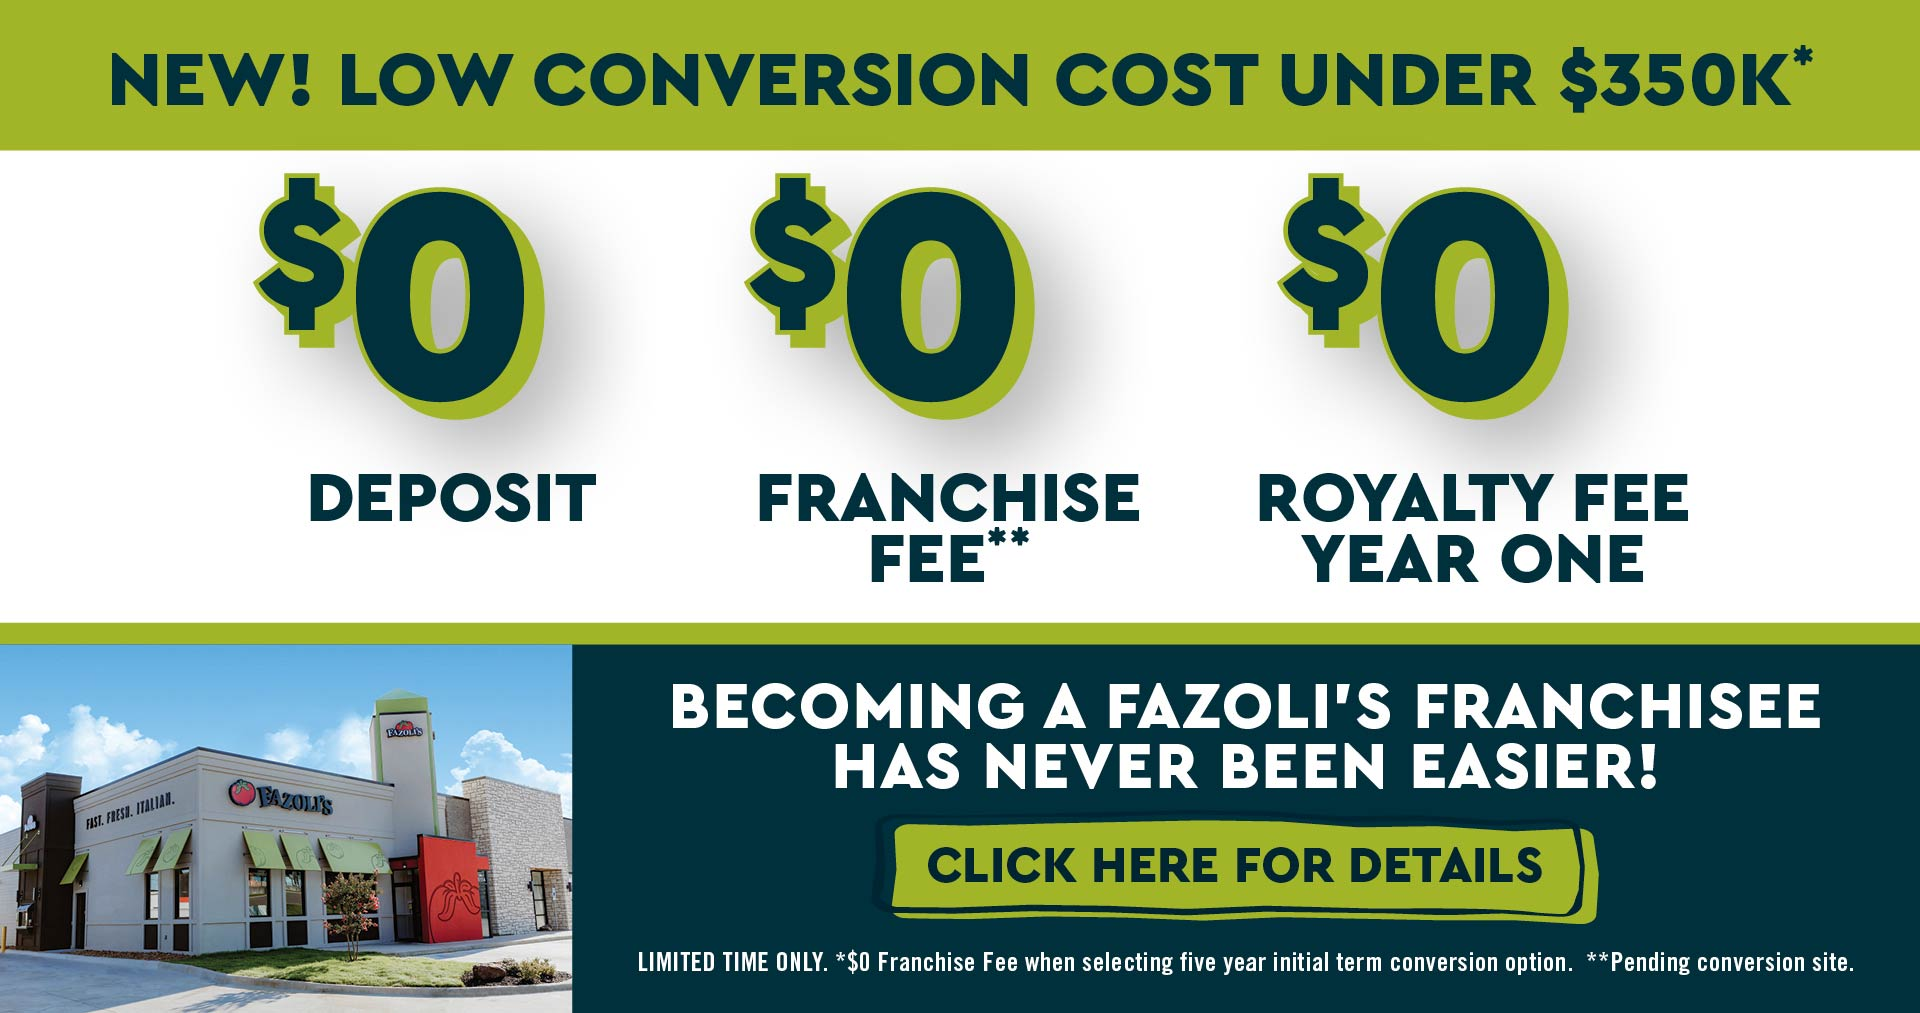 New Low Converstion Cost Under $350K - $0 Deposit, Franchise Fee and Roylaty Fee for Year One. Becoming a Franchisee has never been Easier! Limited Time Only, Terms Apply.